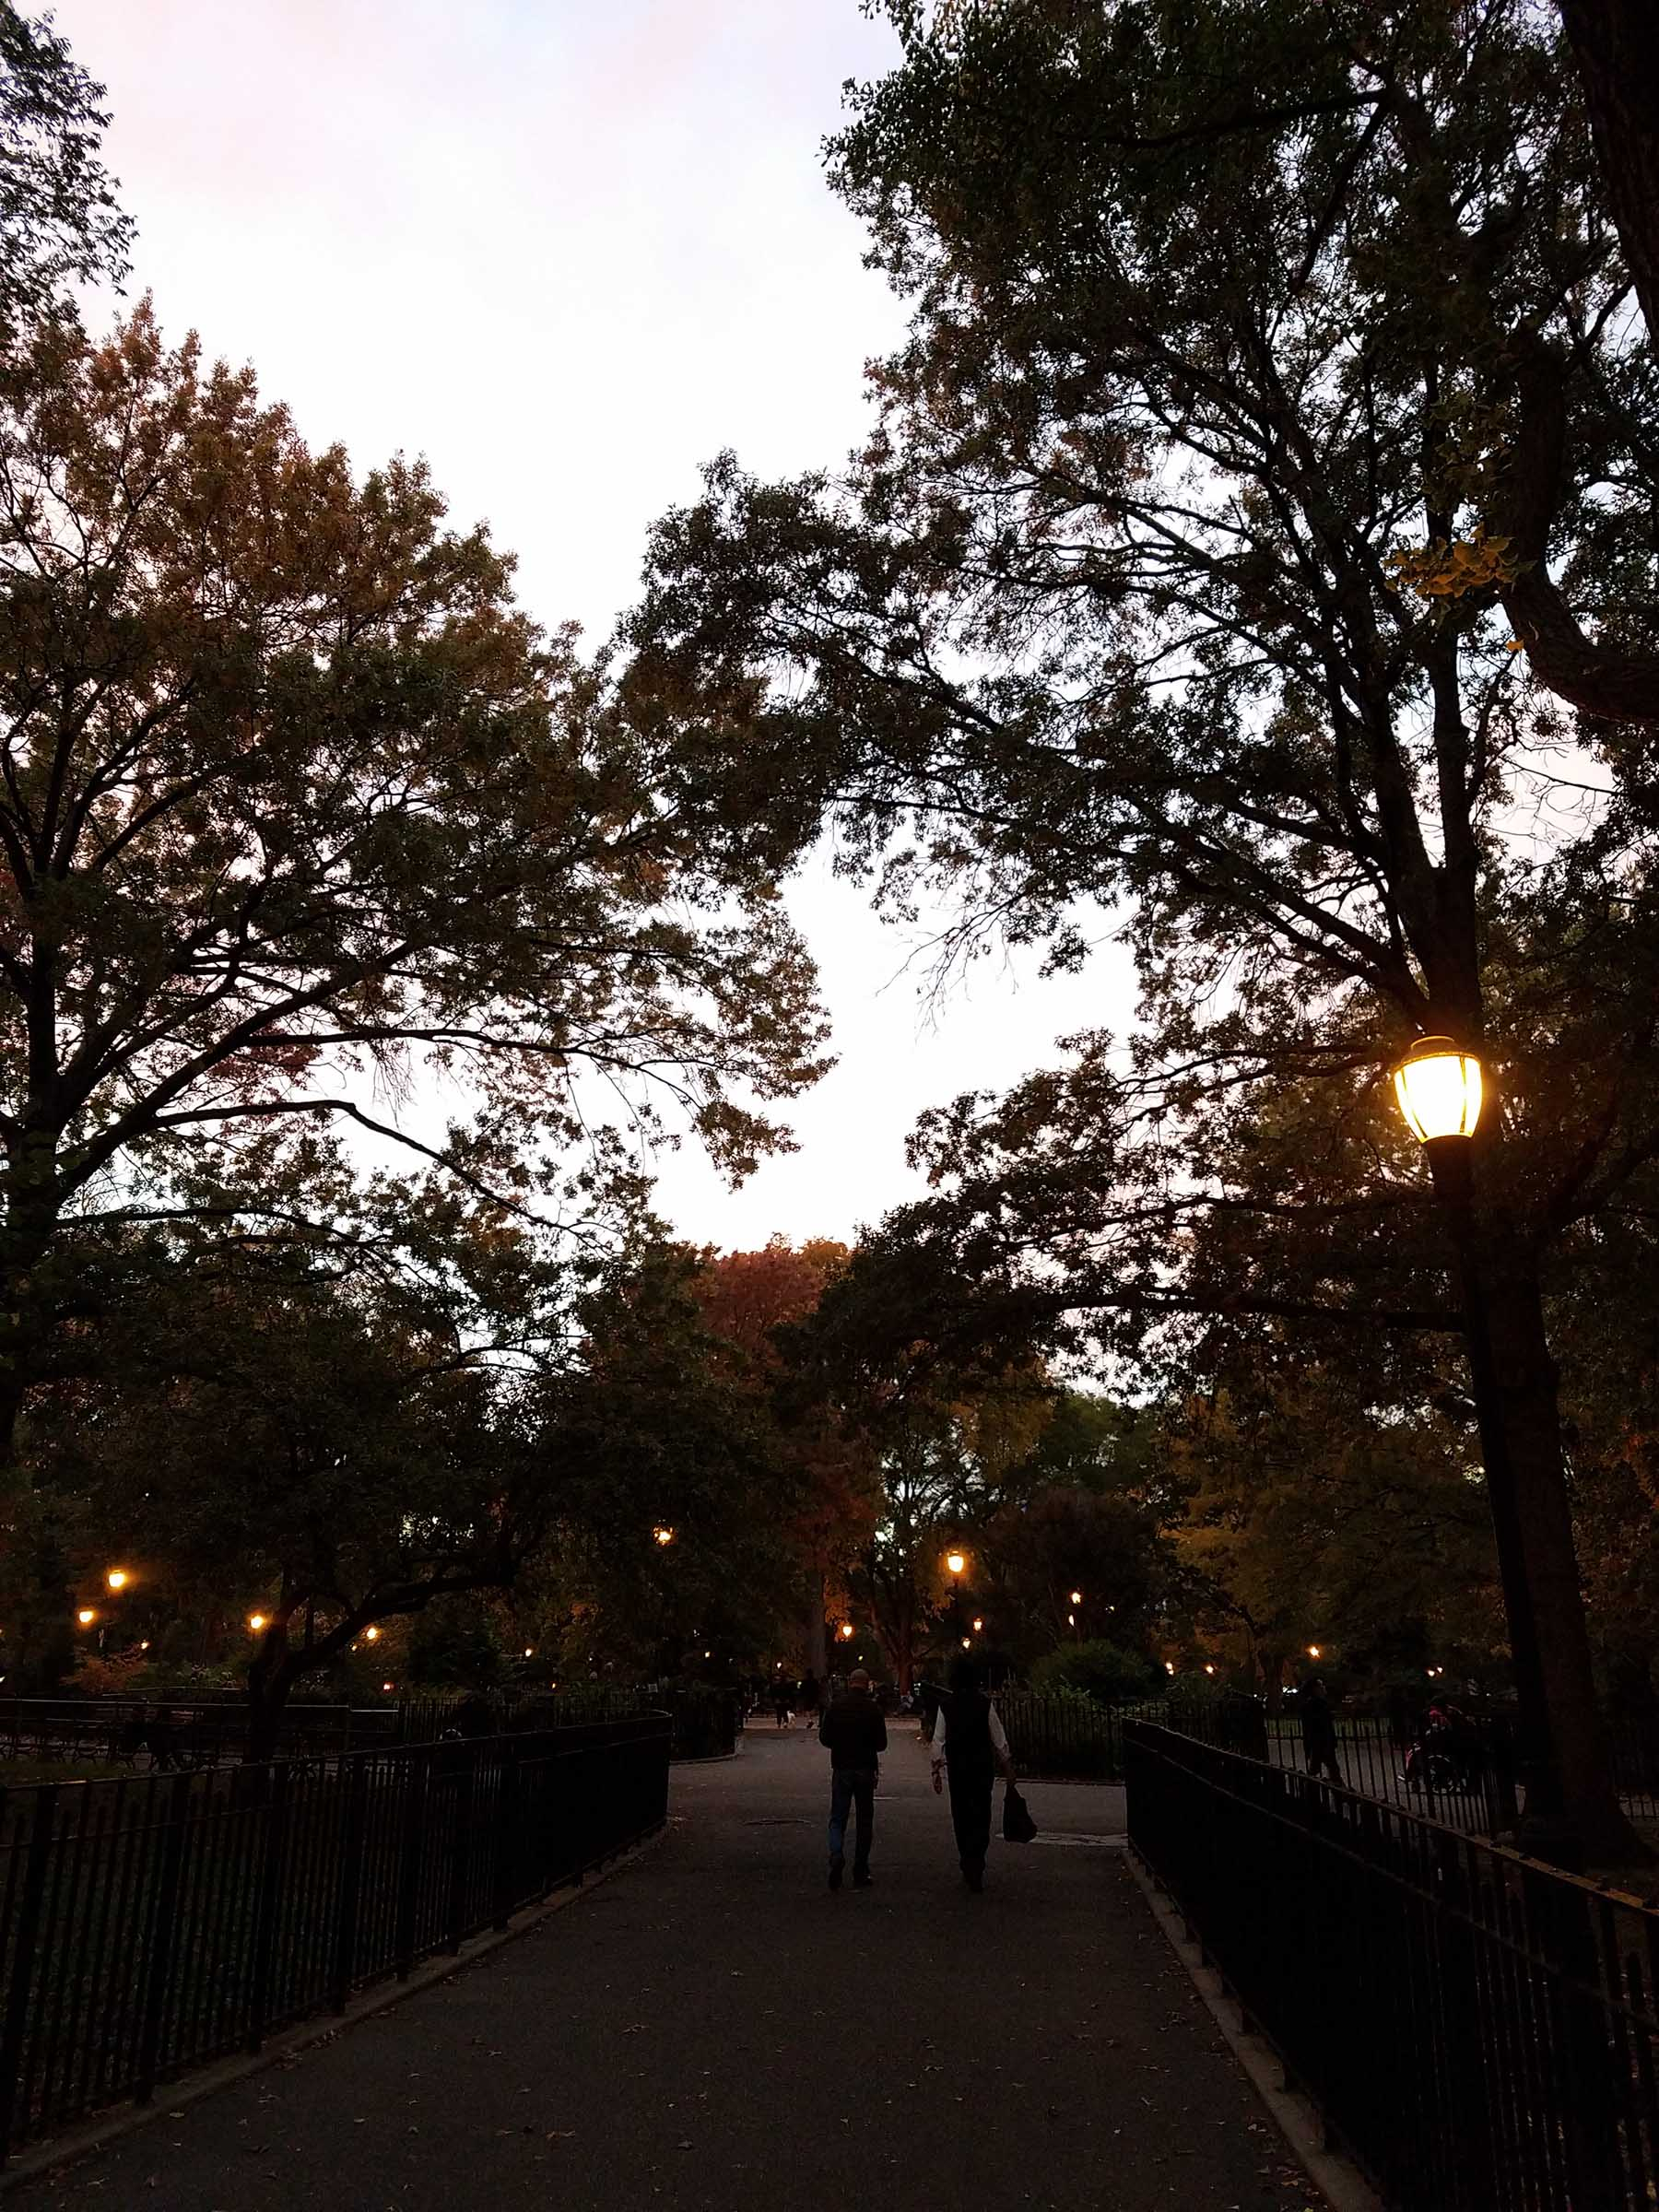 Twilight in a public park walking path. The sky is light but darkening, and orange street lights are on. People, fences, and trees appear mostly as dark silhouettes.